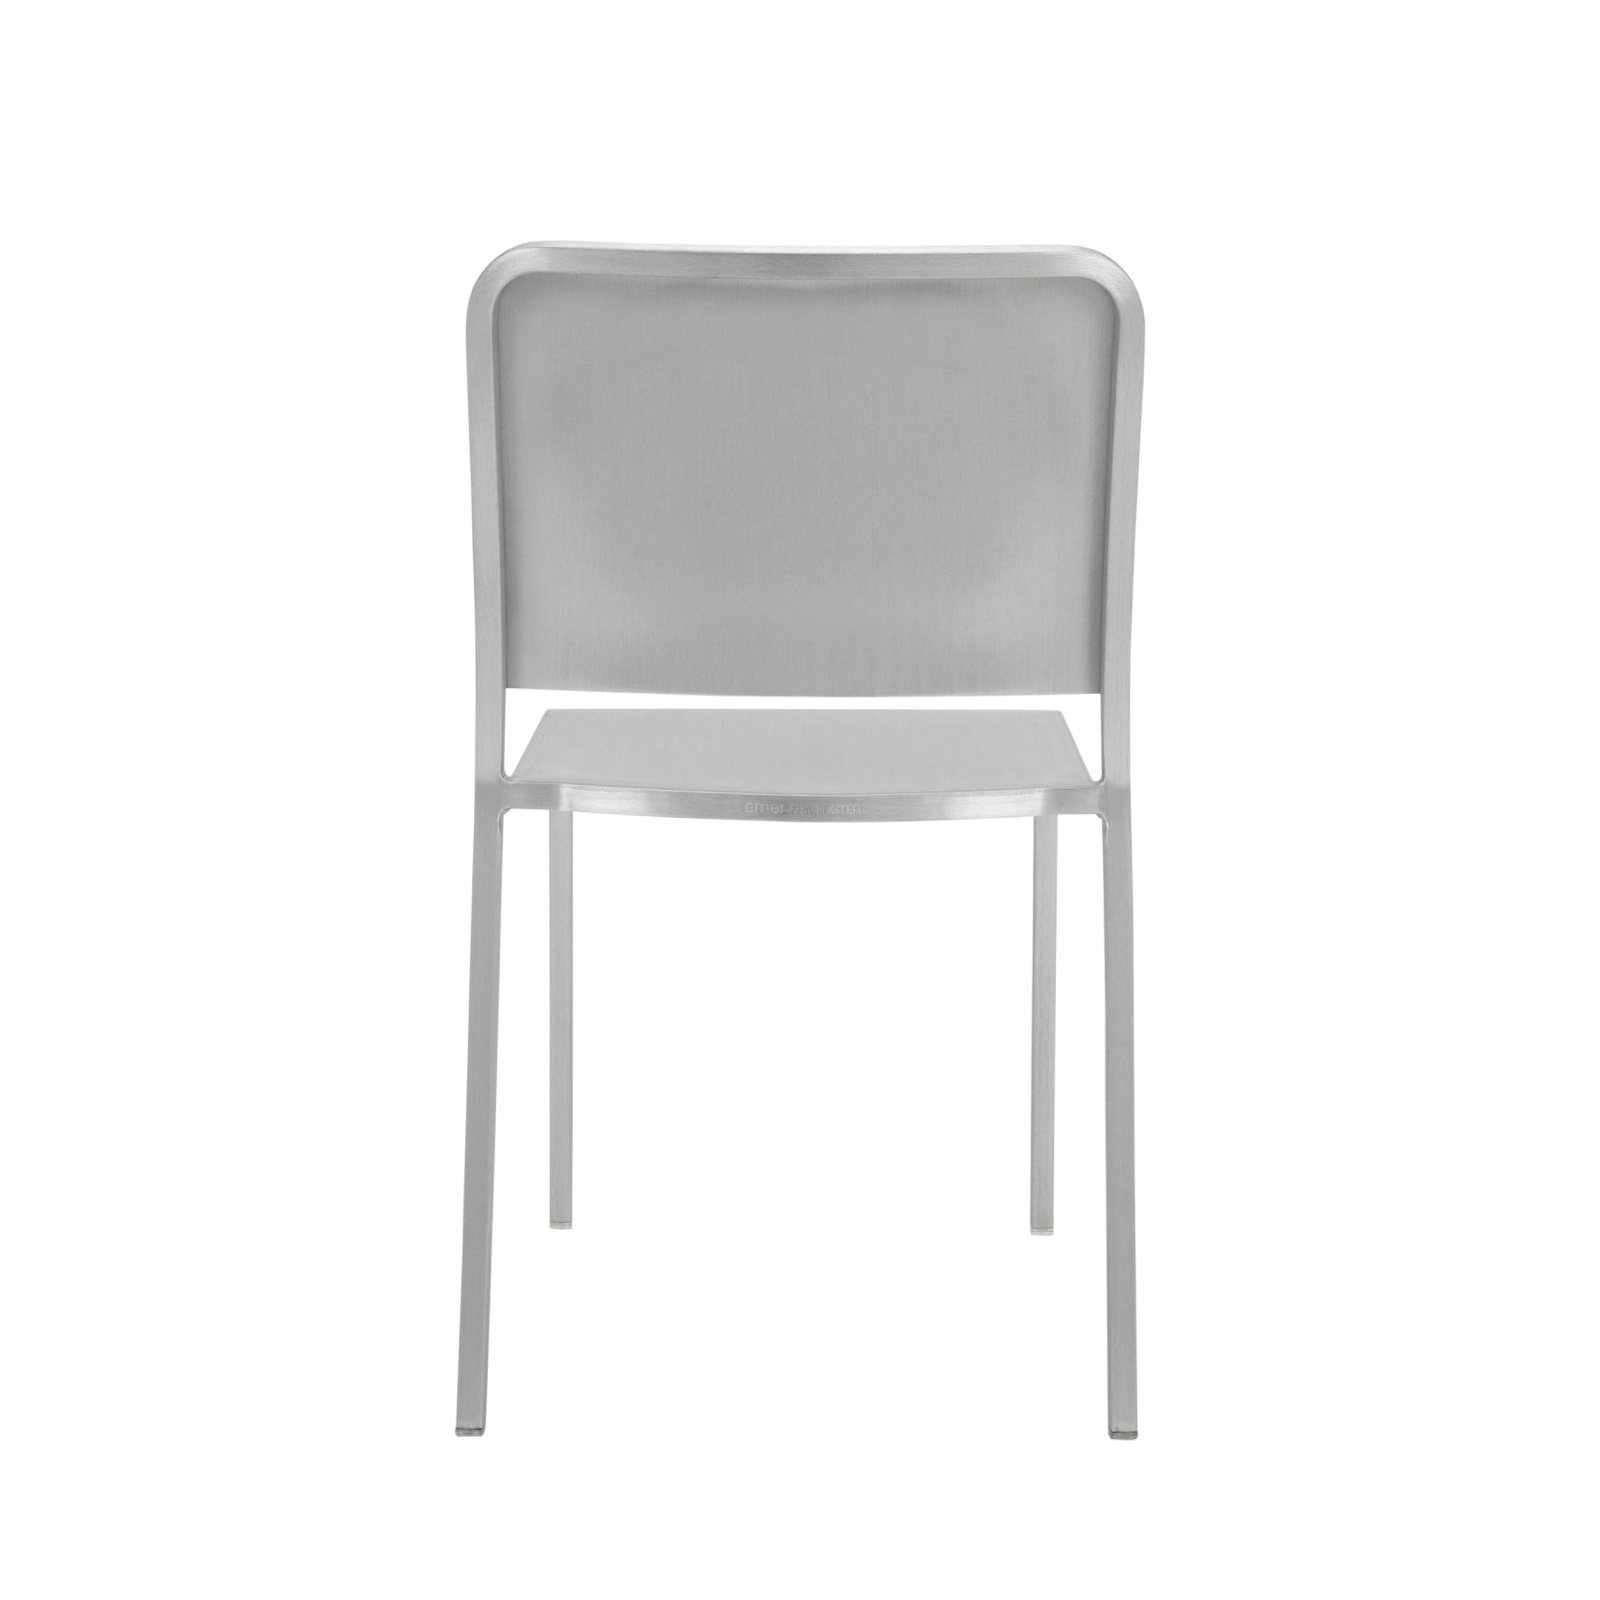 20 06 Stacking Chair By Foster Partners For Emeco Up